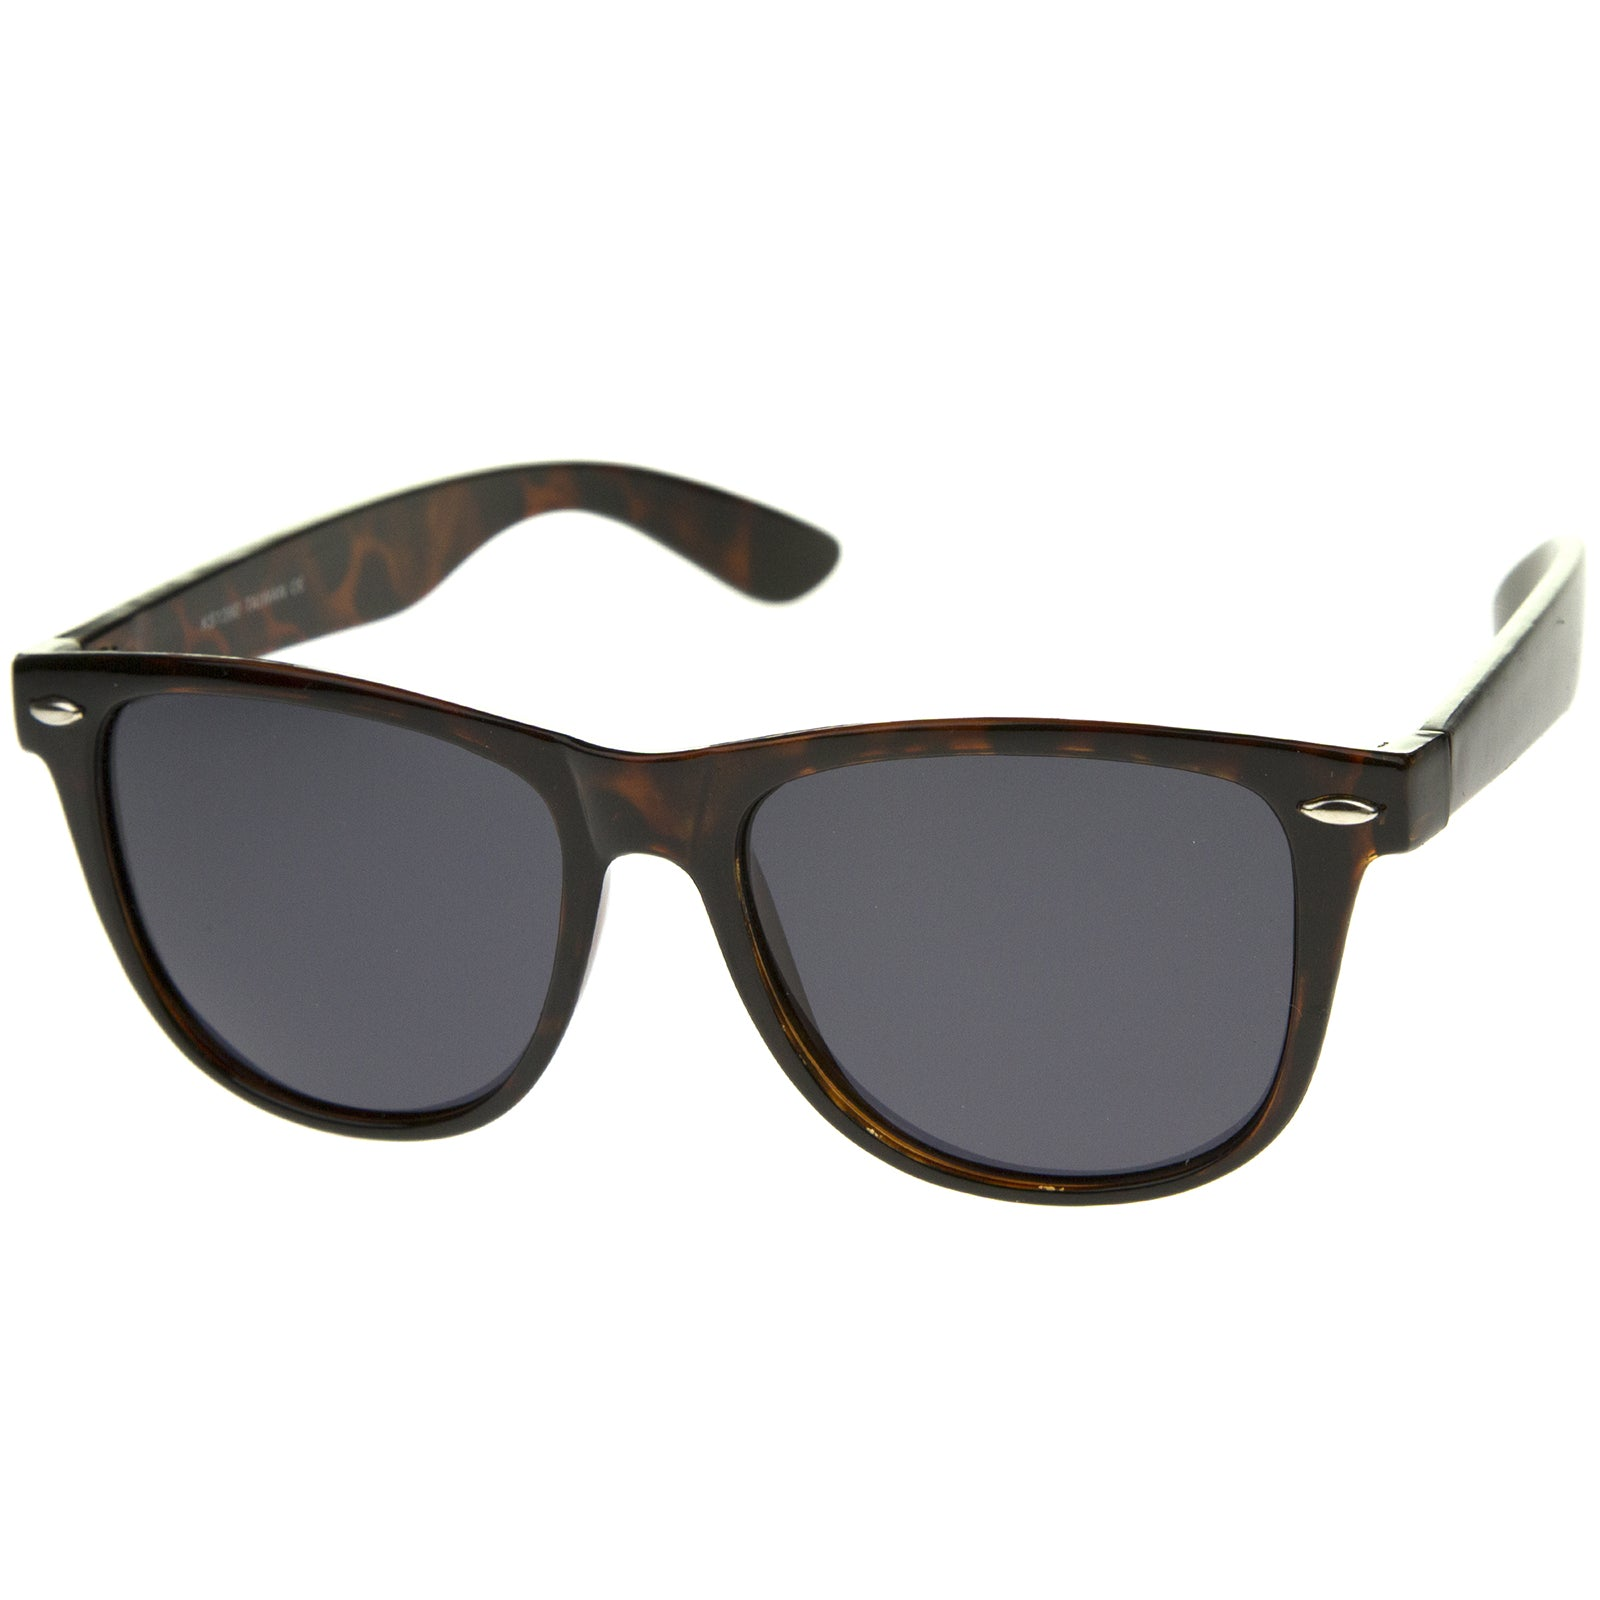 Large Oversize Classic Dark Tinted Lens Horn Rimmed Sunglasses 55mm - sunglass.la - 6